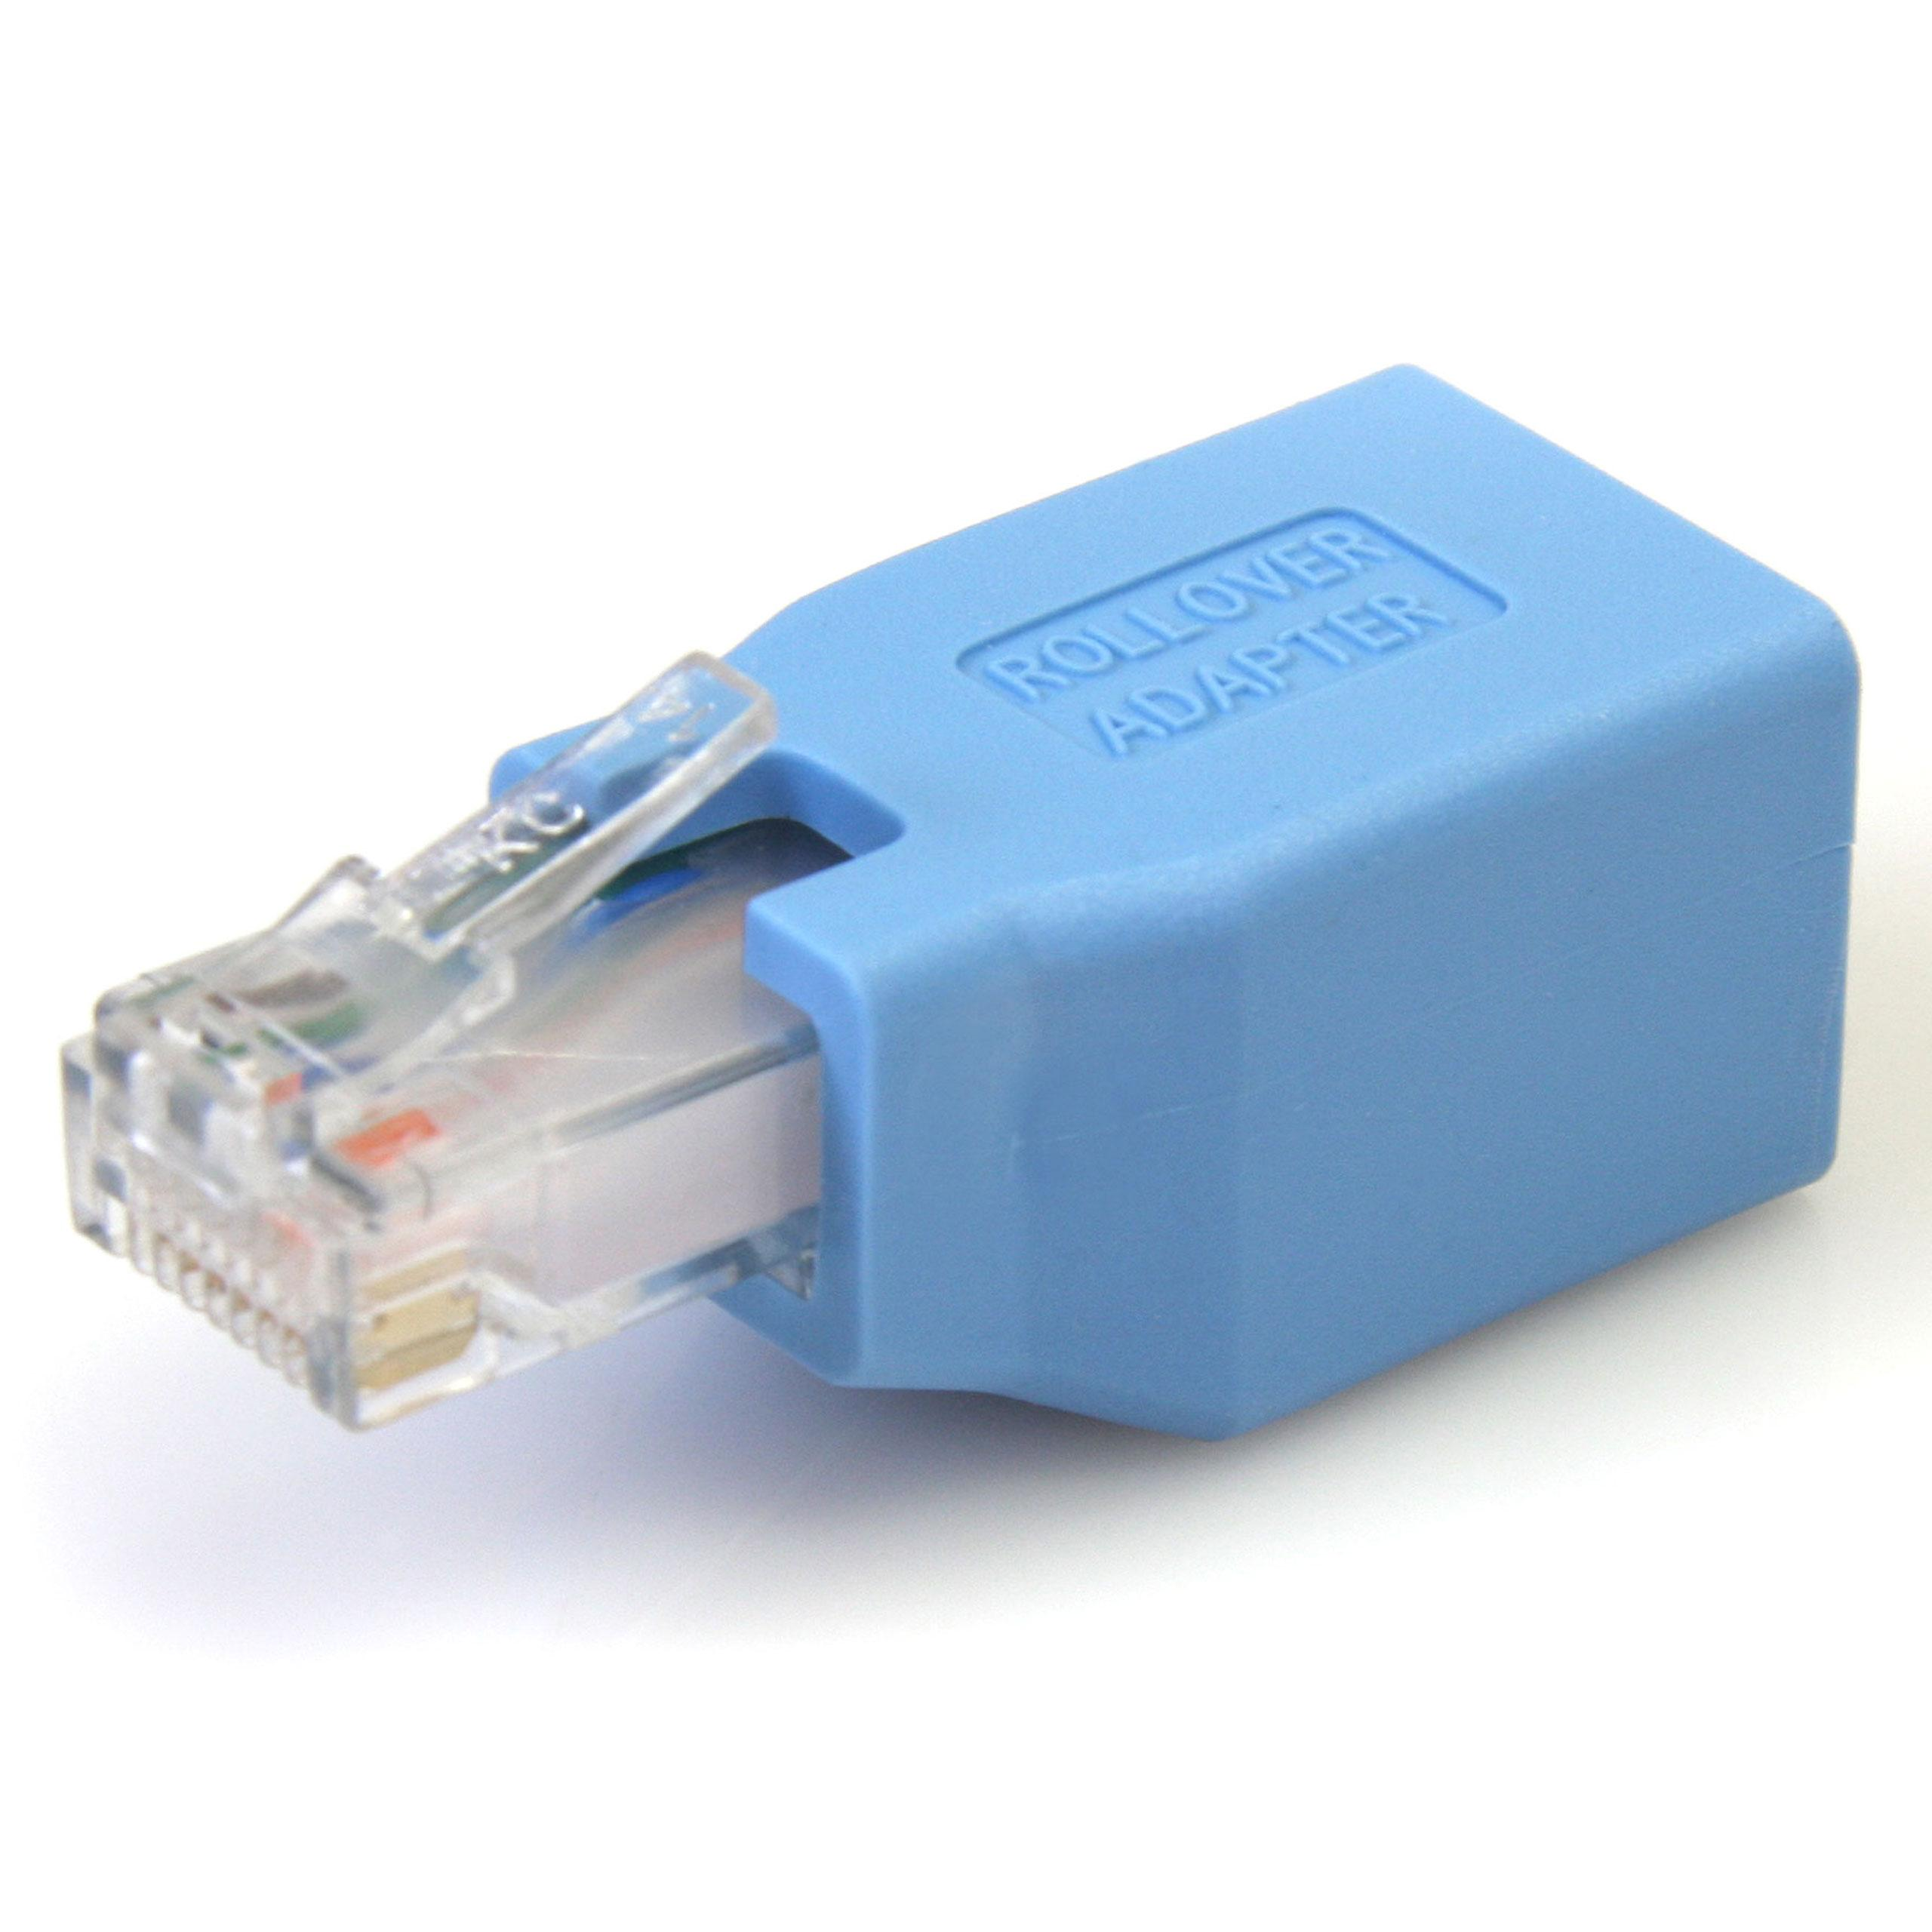 StarTech Cisco Console Rollover Adapter for RJ45: Amazon.co.uk ...